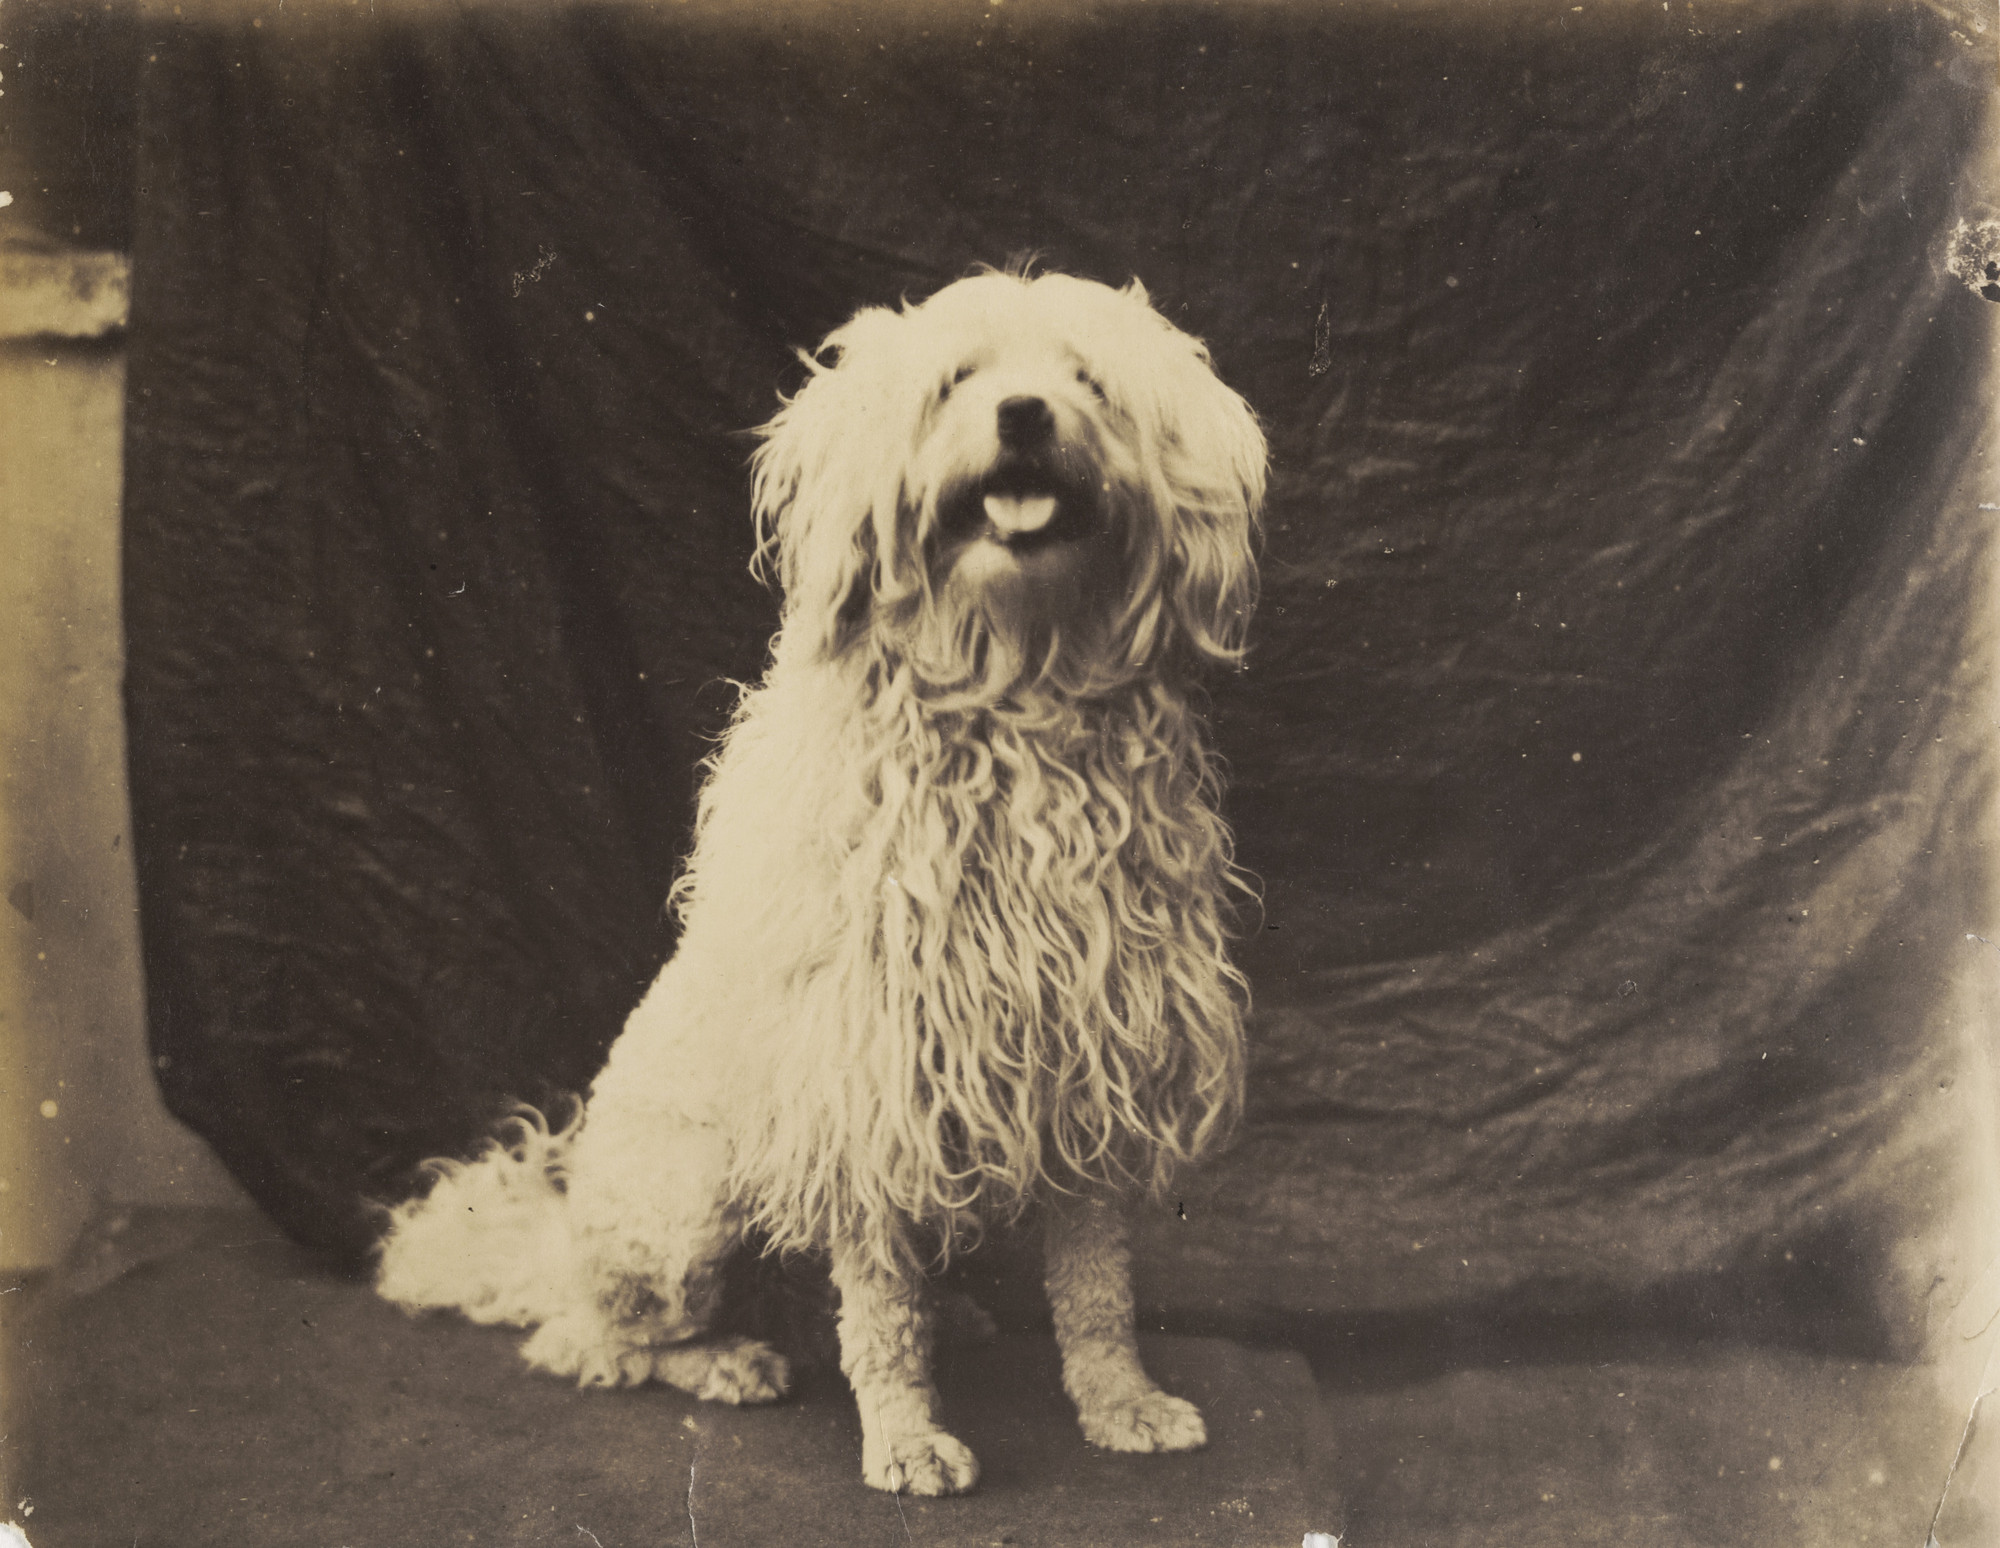 Charles Marville. Dog. 1860s?